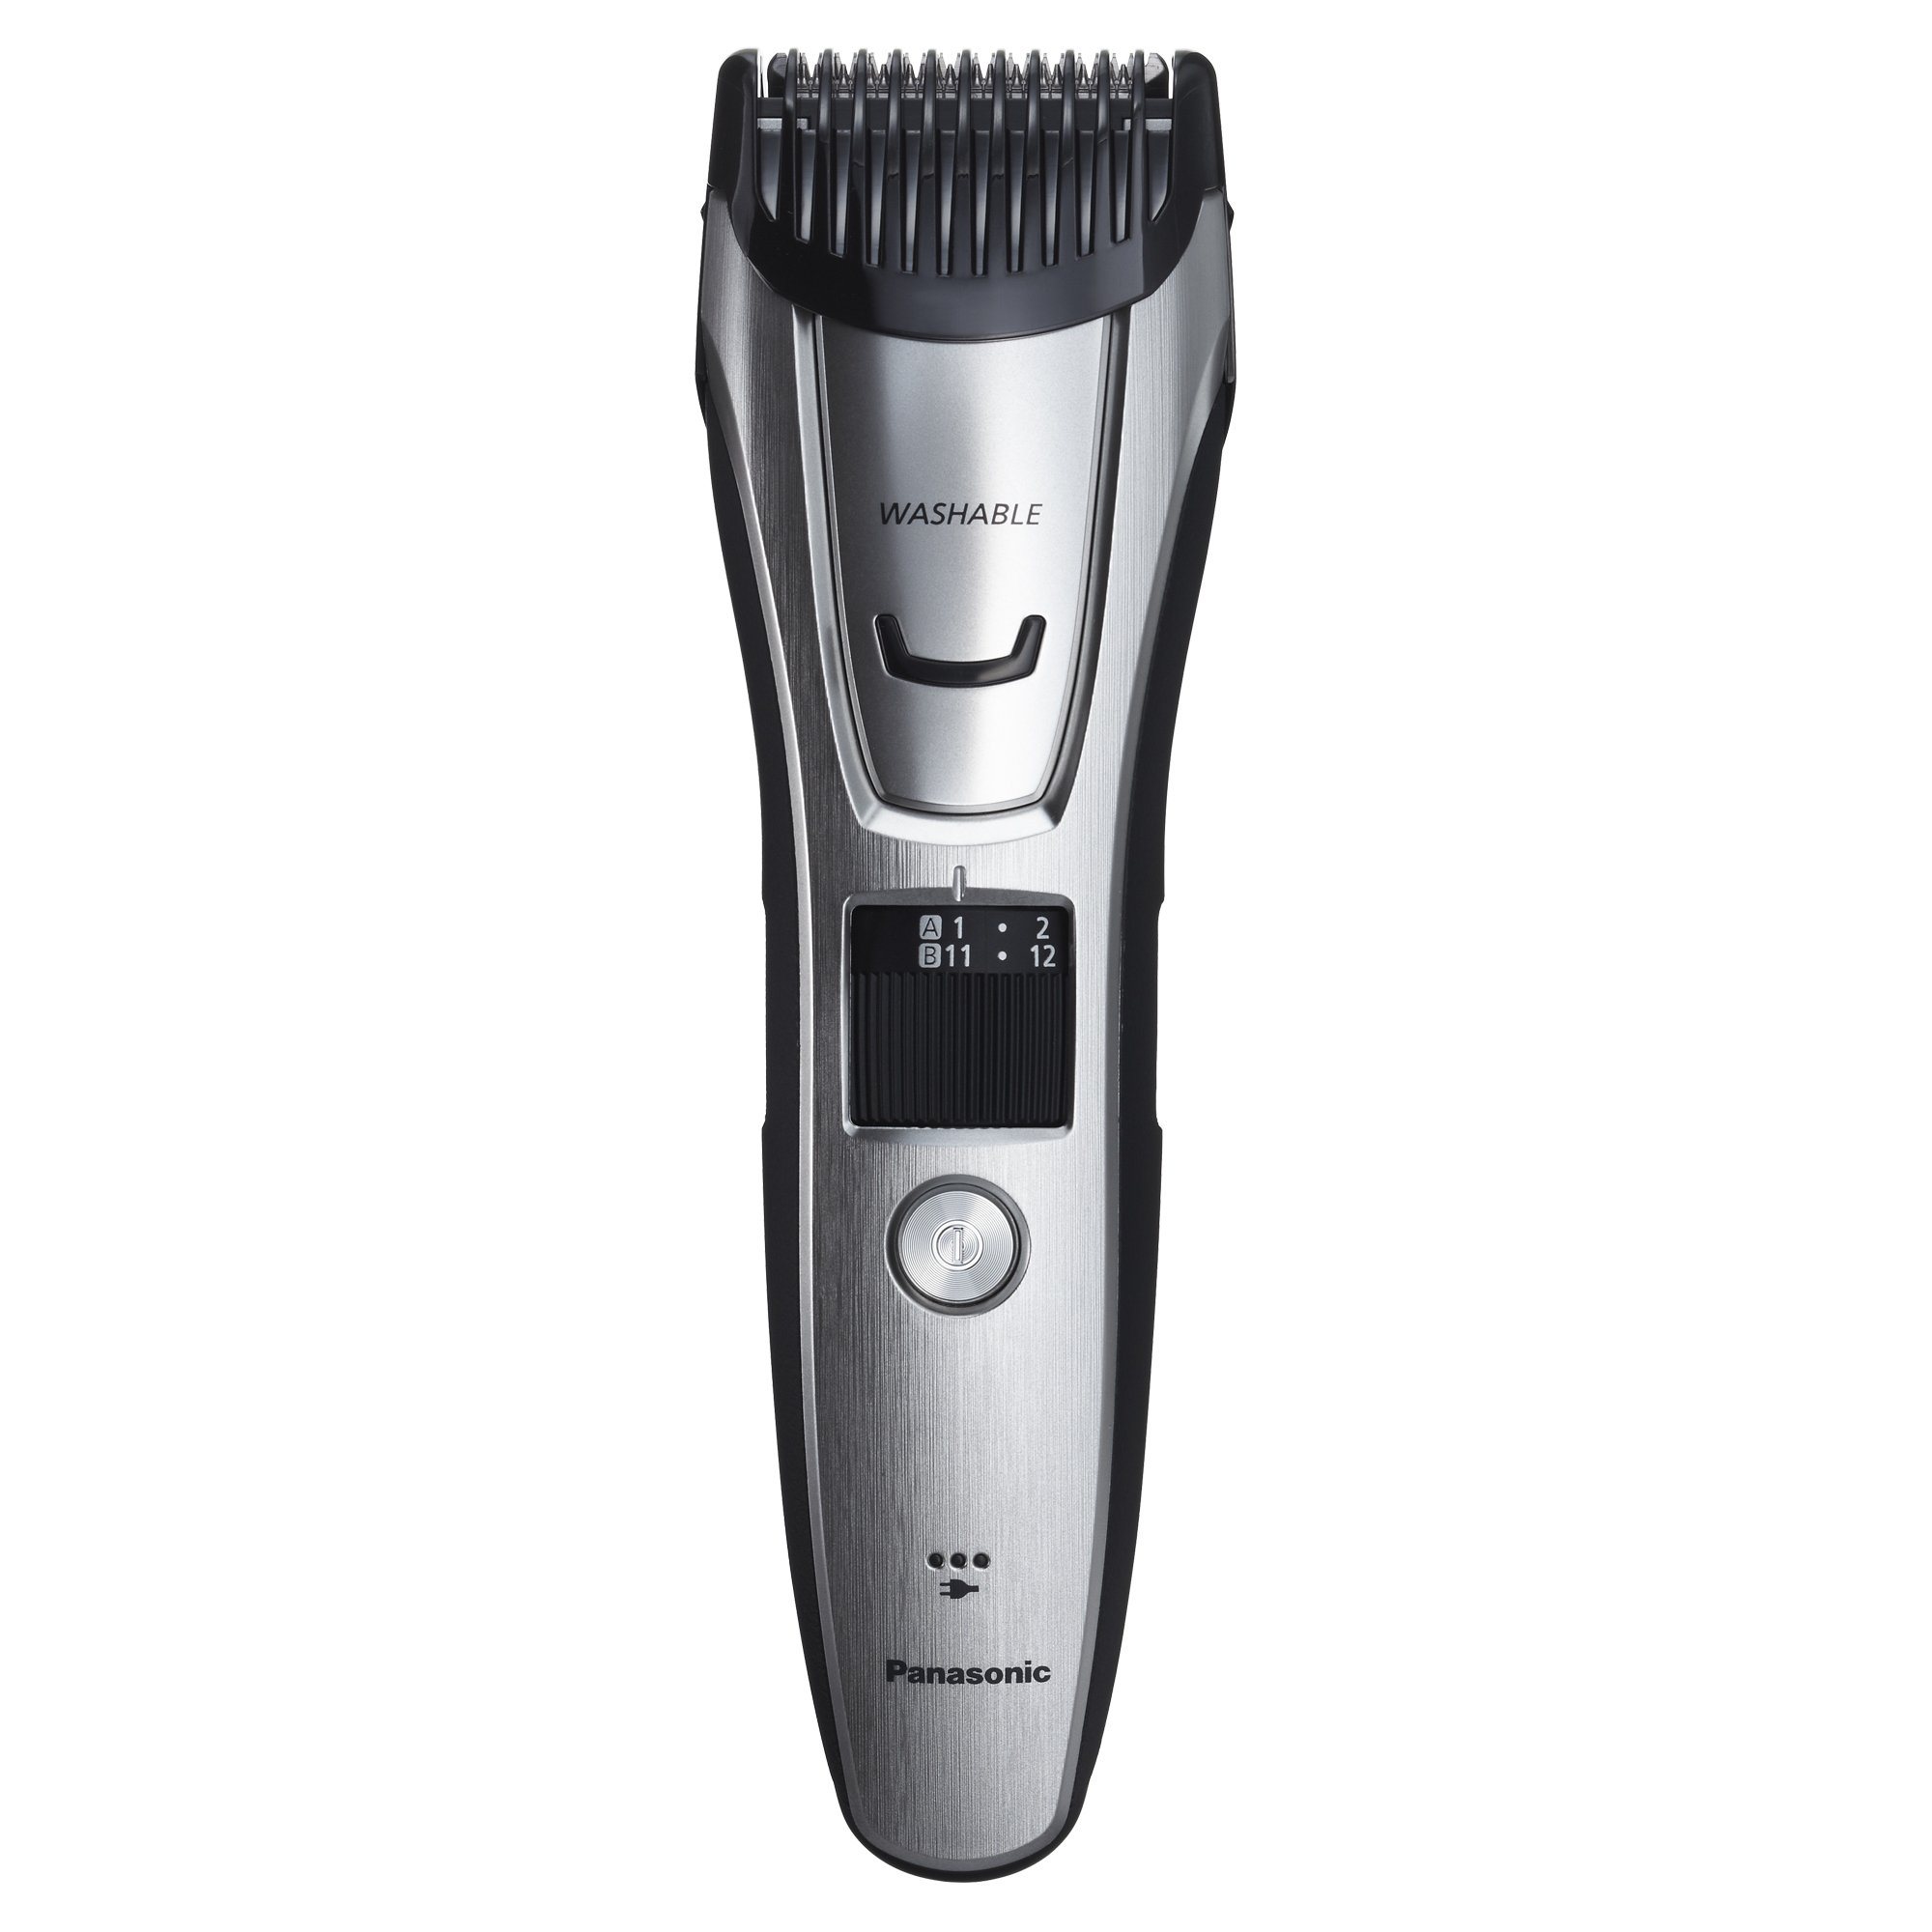 Panasonic ER-GB80-S Body and Beard Trimmer, Hair Clipper, Men's, Cordless/Corded Operation with 3 Comb Attachments and 39 Adjustable Trim Settings, Washable by Panasonic (Image #6)